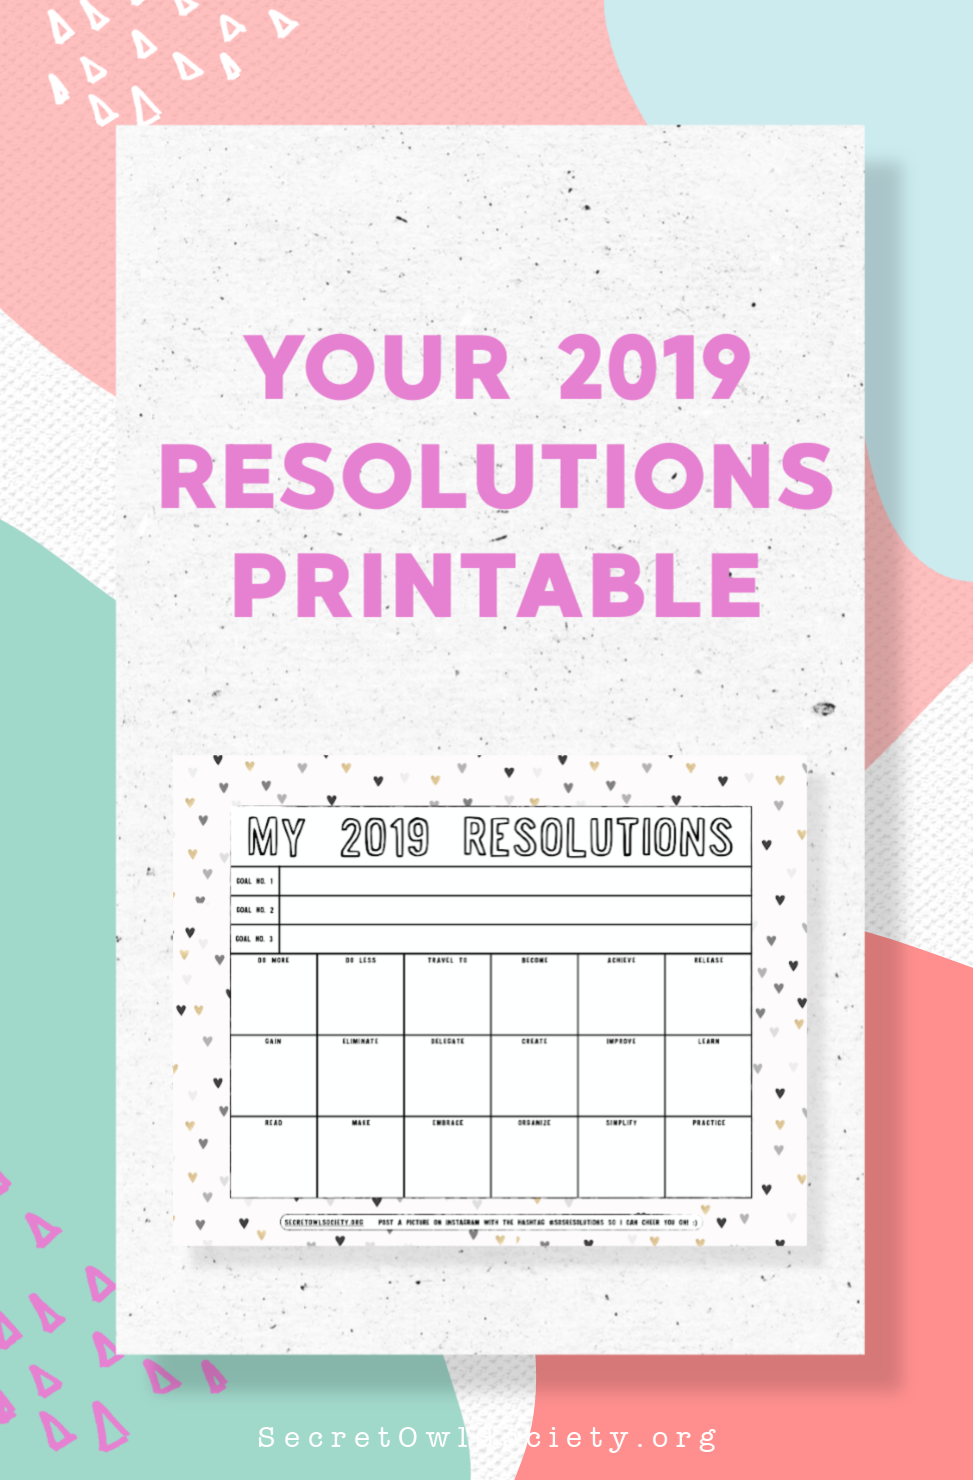 Set your goals with your intuition when you fill out this 2019 Resolutions Printable